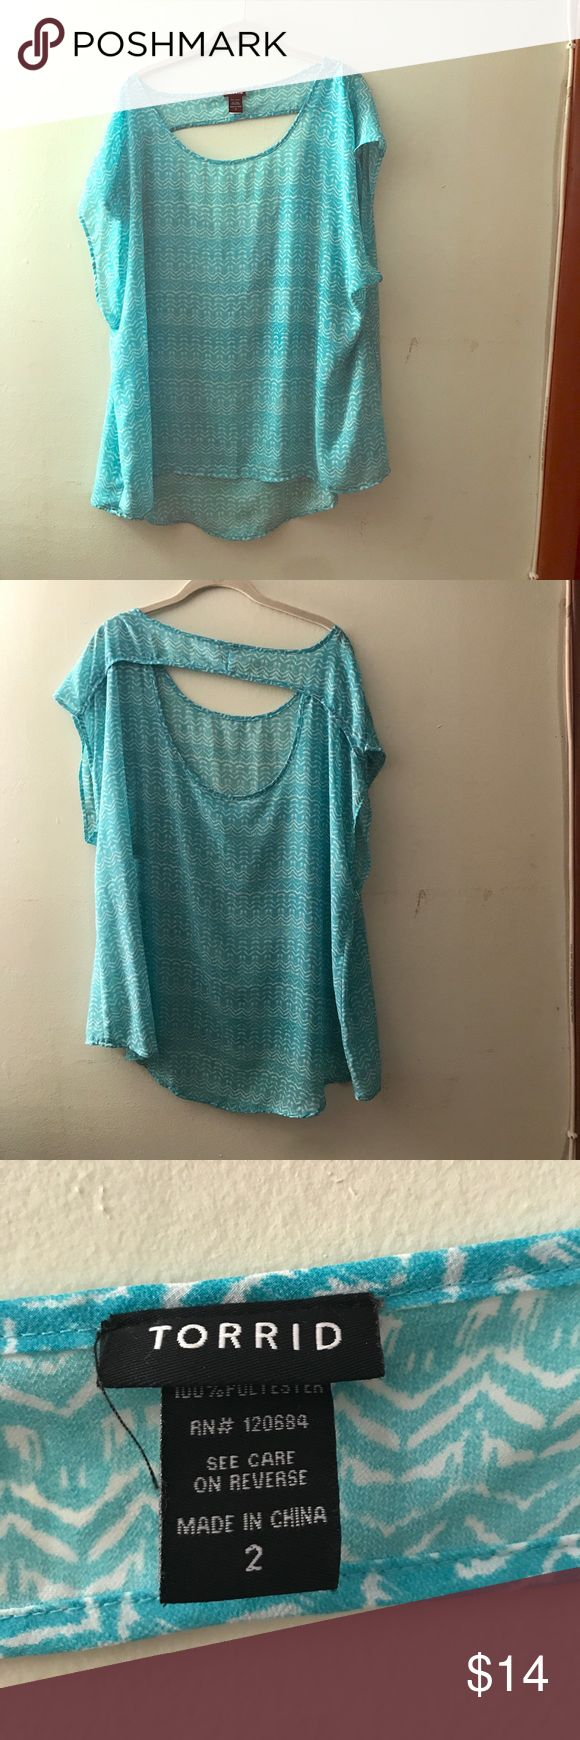 Summery turquoise blouse Adorable, Flowy, light shirt! Slightly open back, barely worn! Torrid size 2! Hi-low torrid Tops Blouses